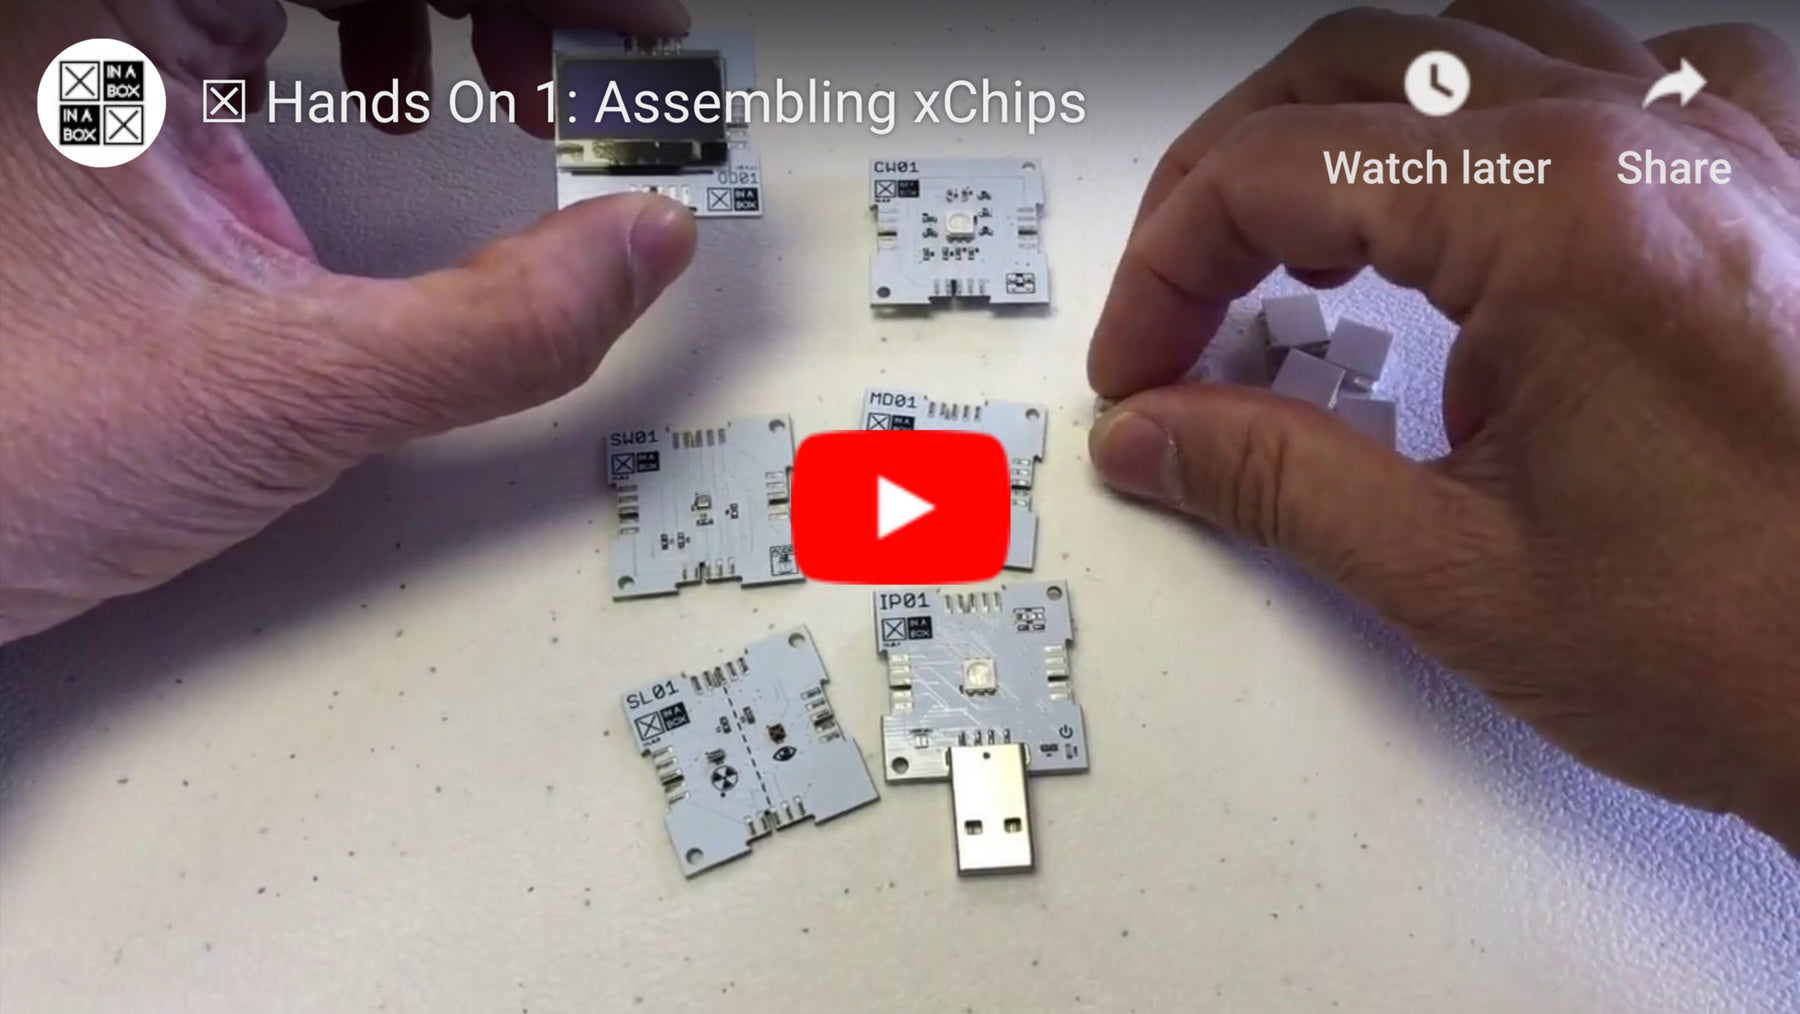 Hands On 1: Assembling xChips